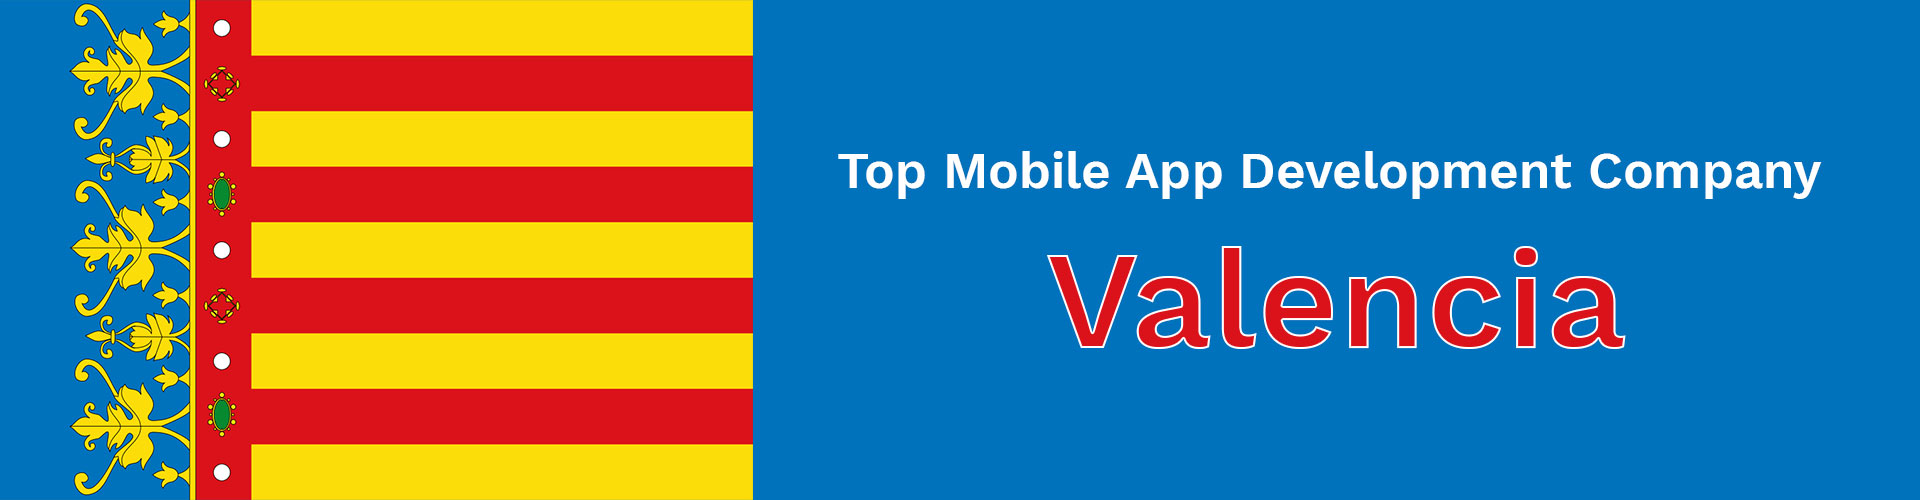 mobile app development company valencia